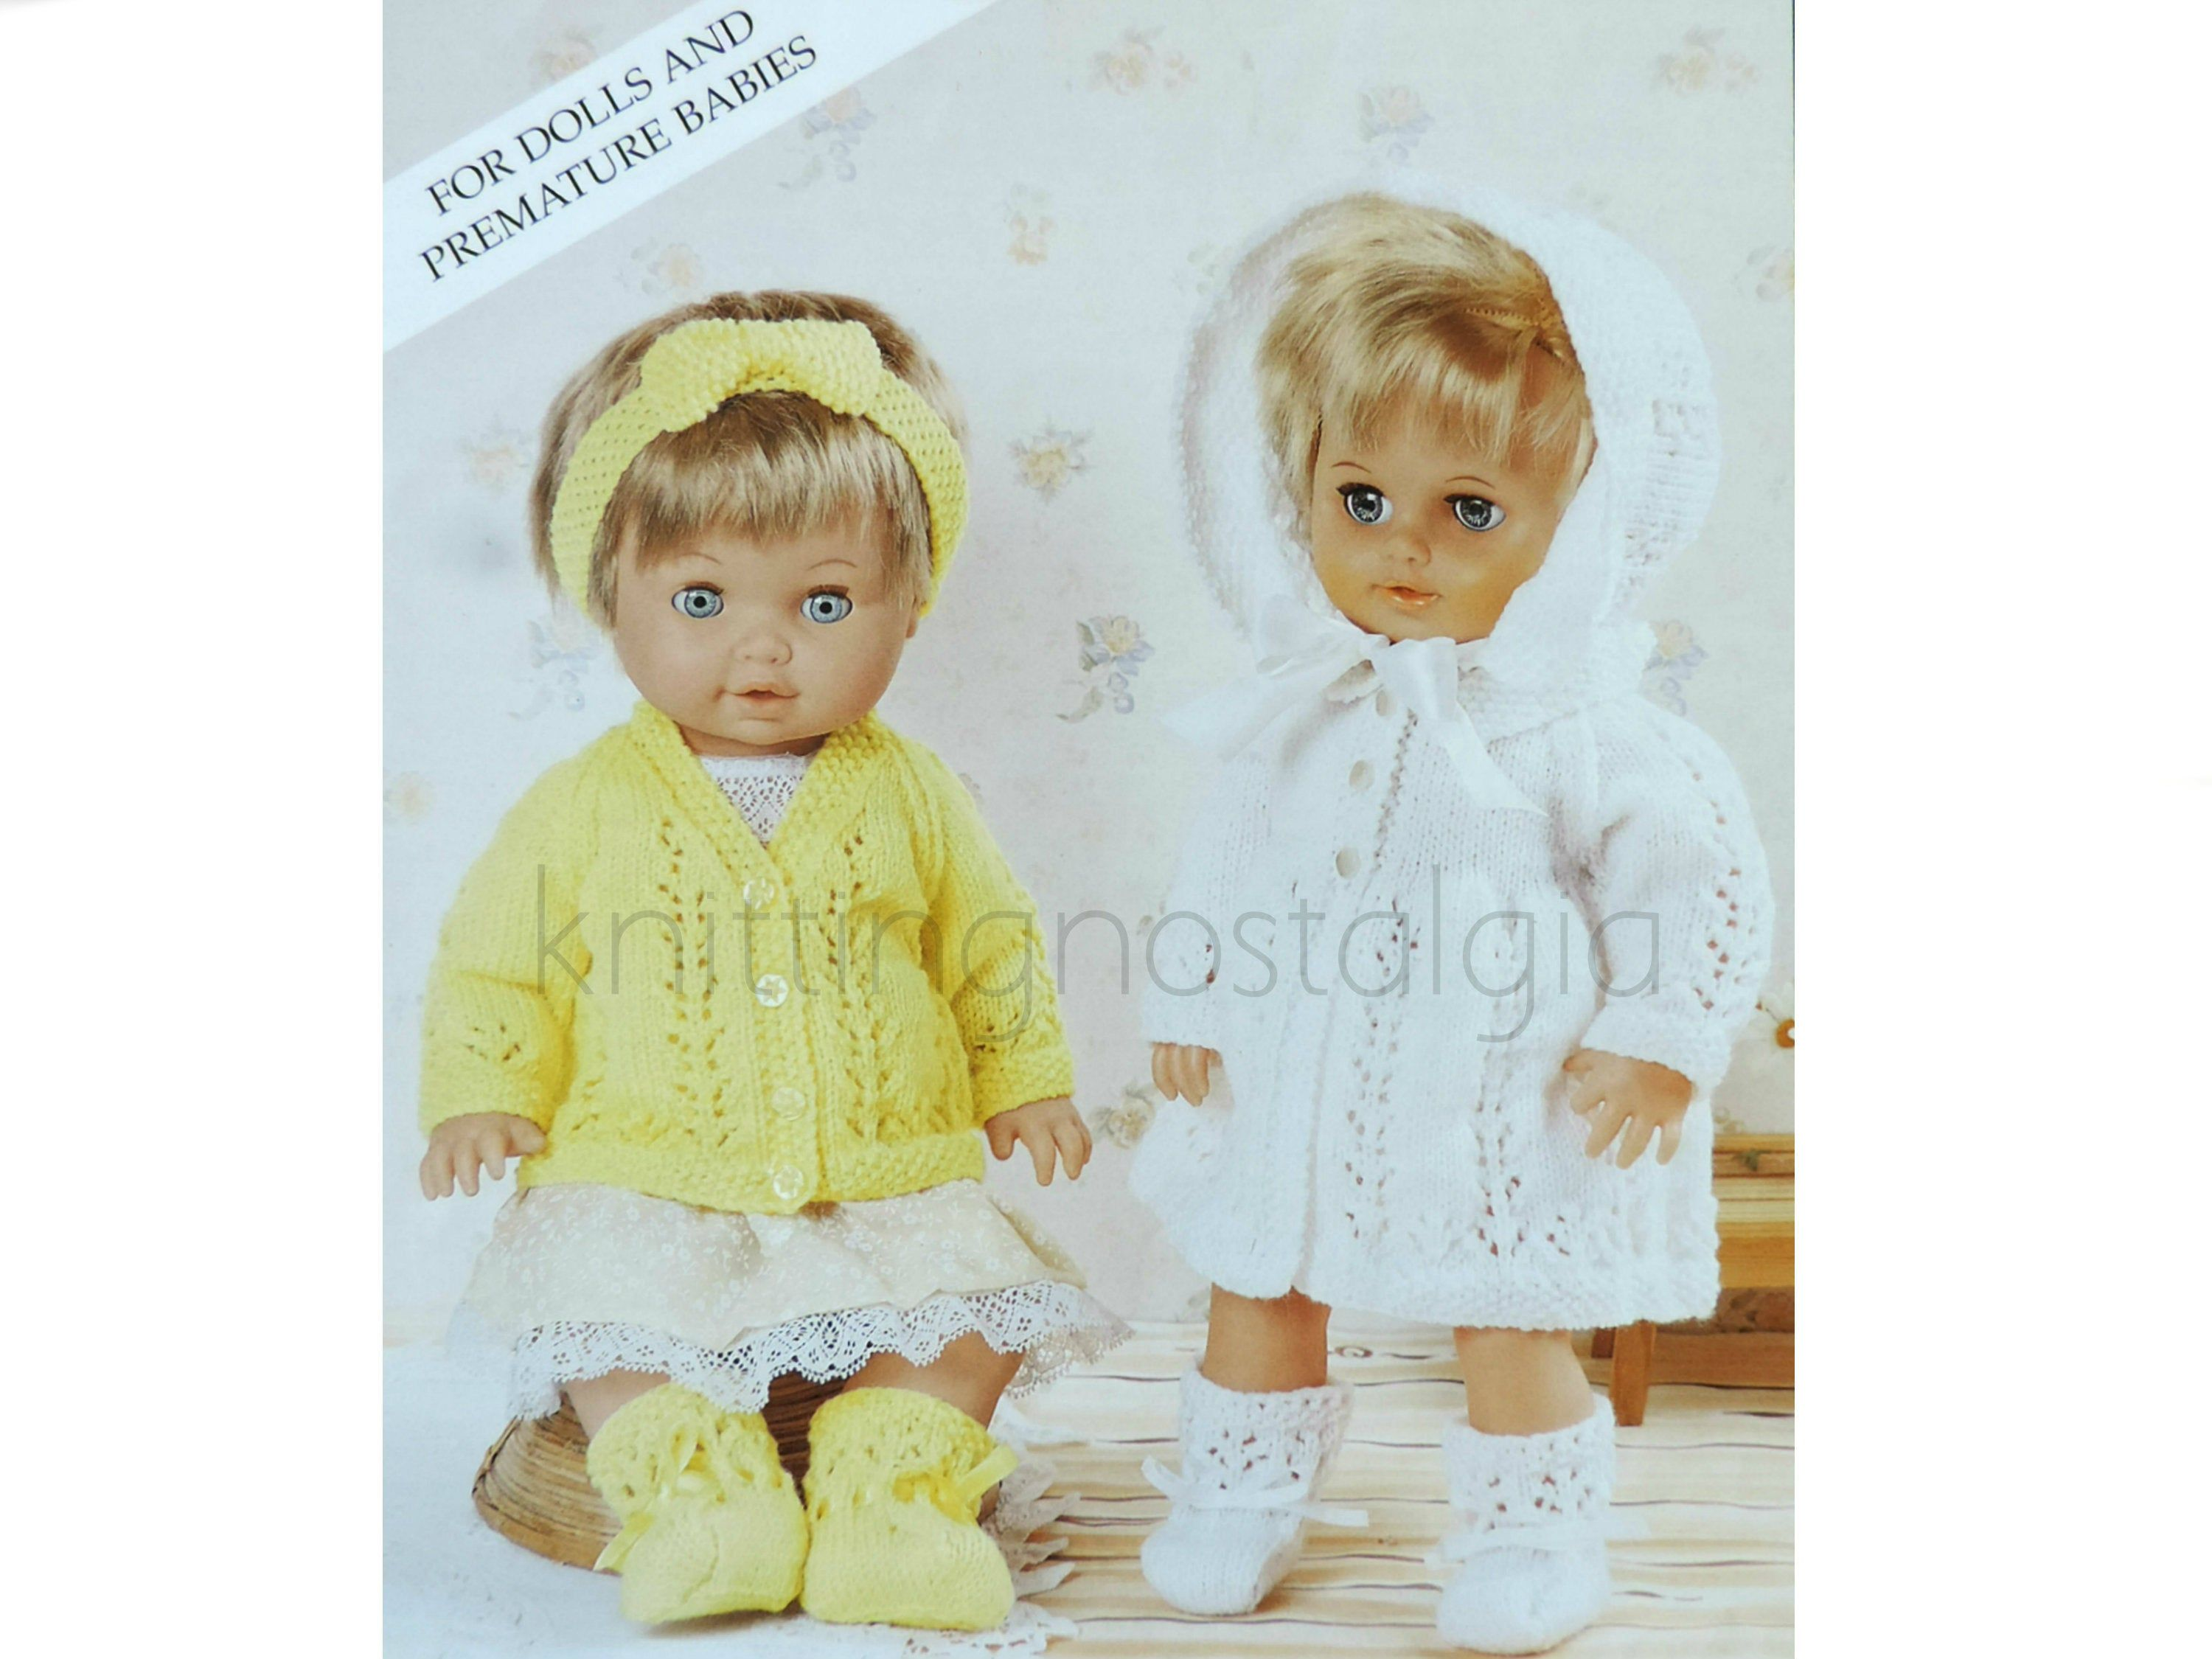 Baby Doll Prem Baby Clothes Matinee Set Knitting Pattern Etsy In 2020 Knitting Patterns Baby Patterns Modern Knitting Patterns